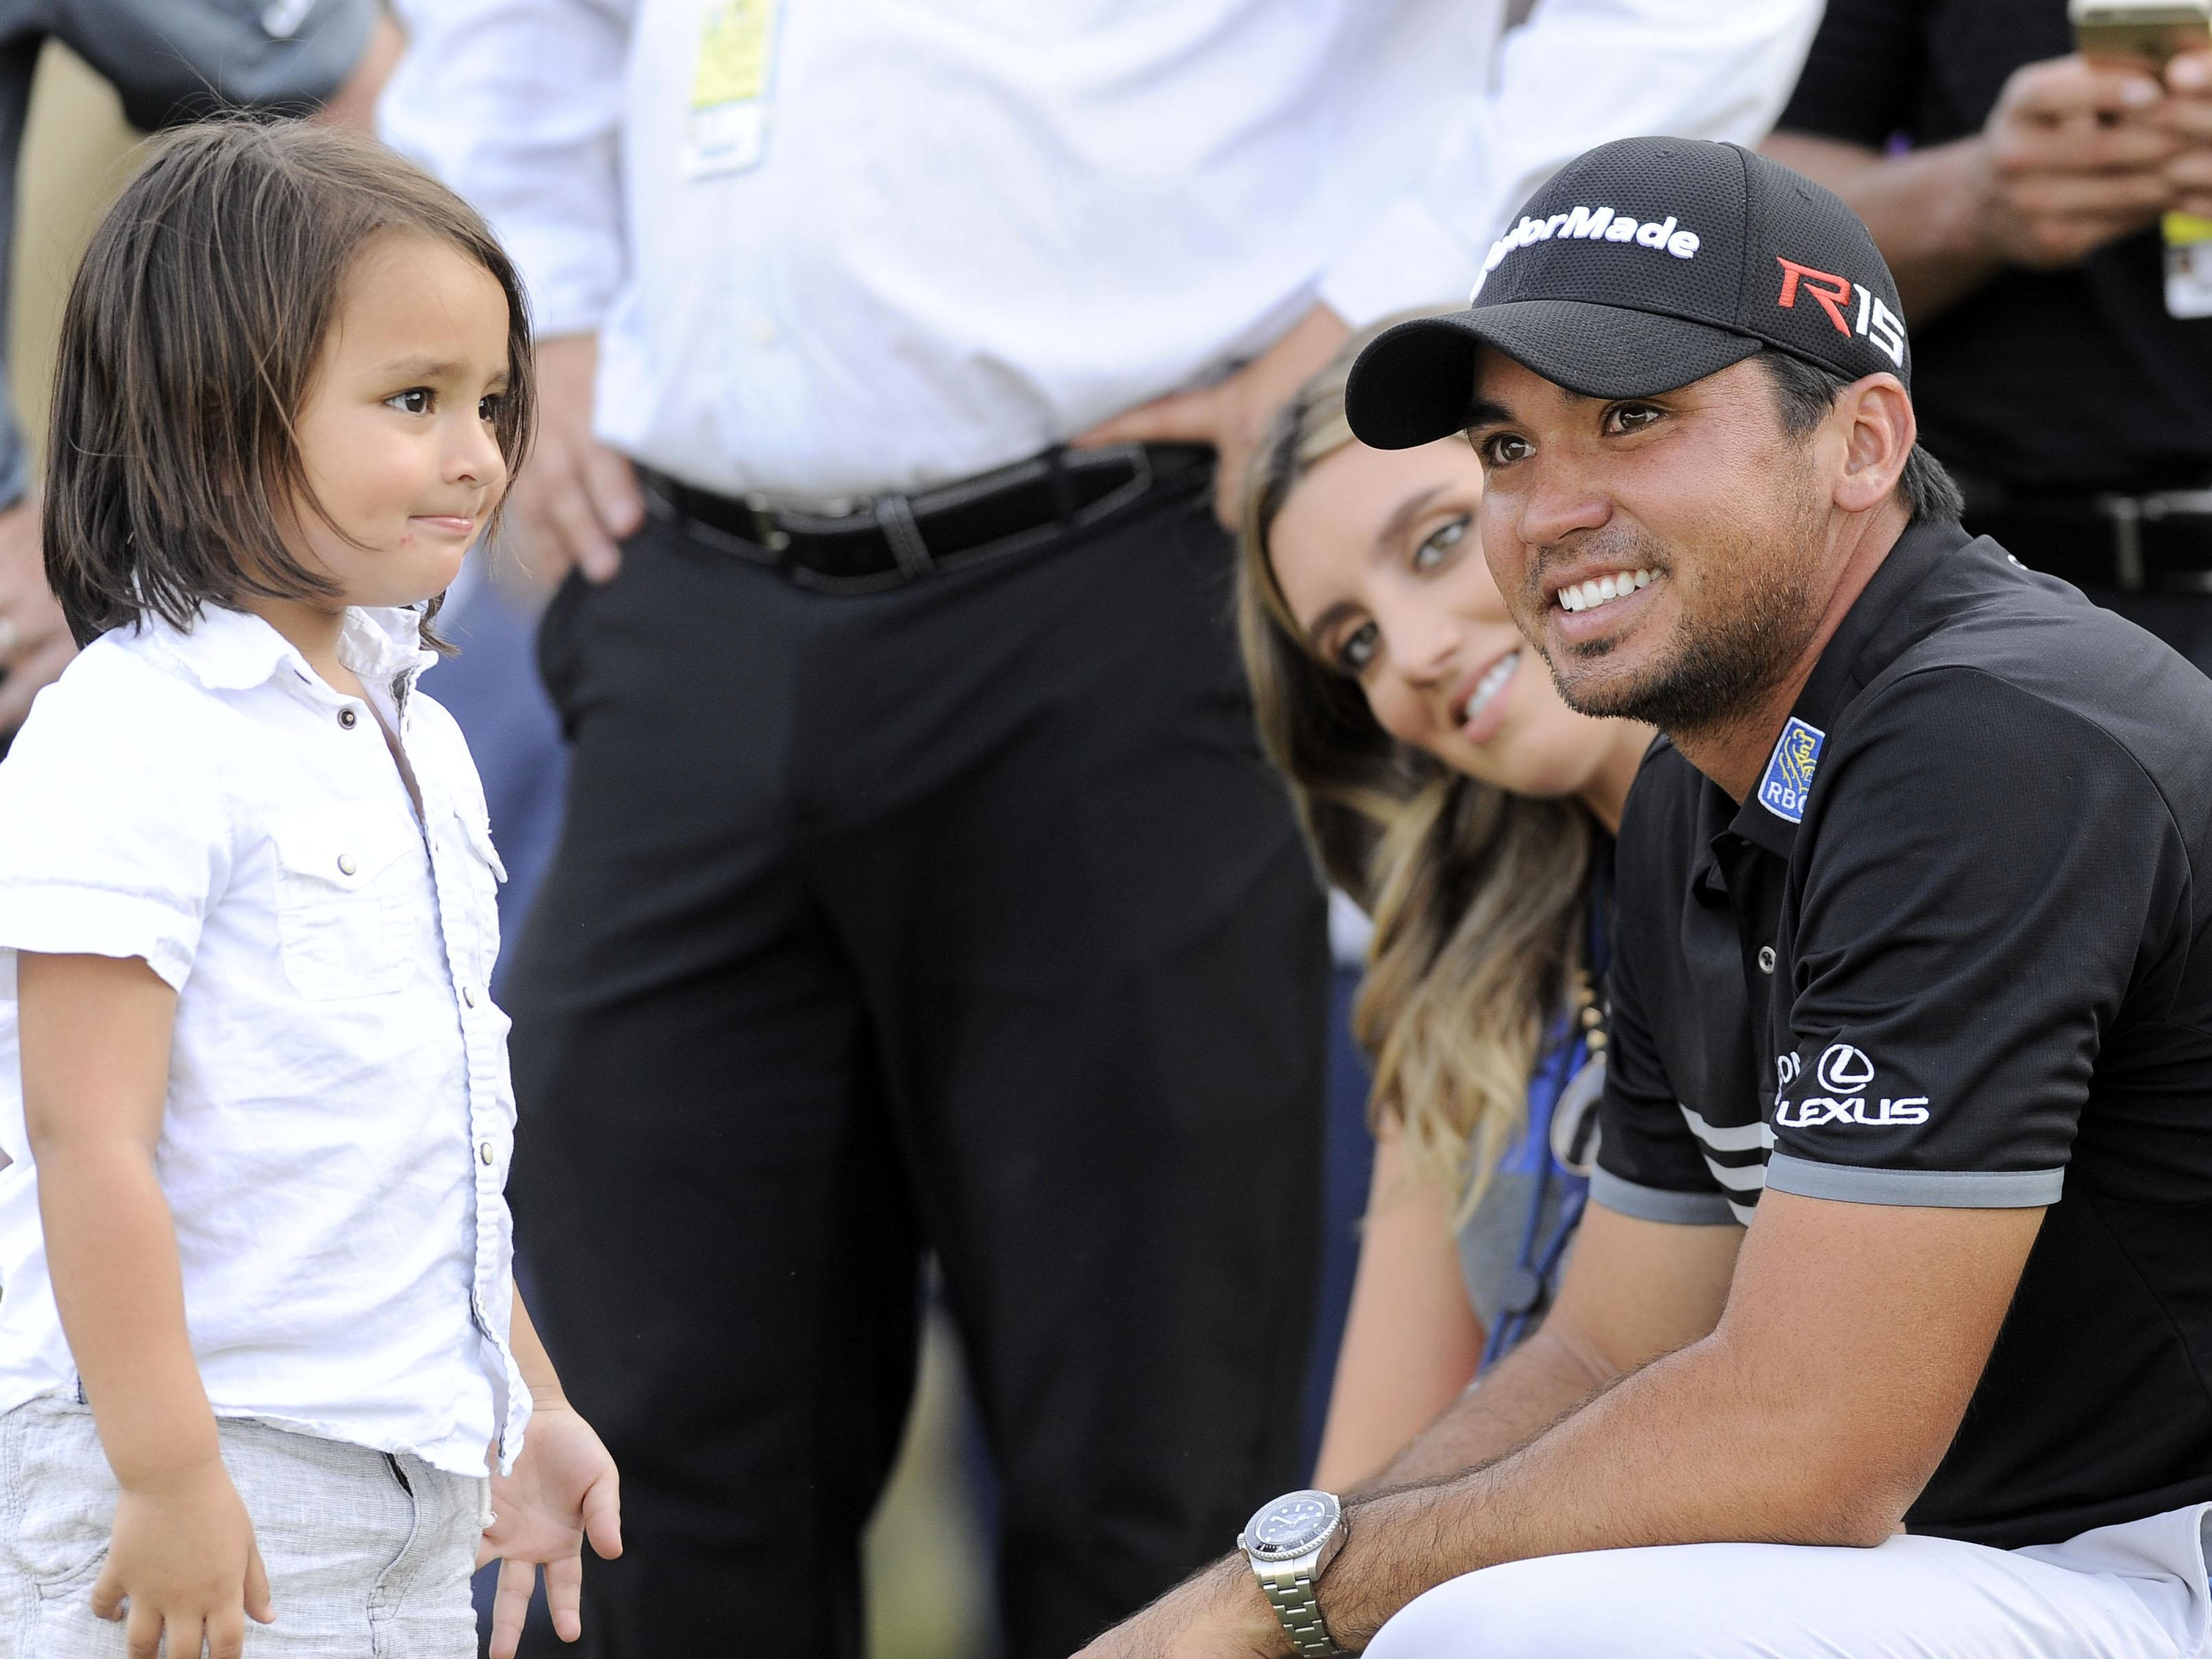 Jason Day with his son Dash Day and his wife, Lucas native Ellie Day after winning the 2015 PGA Championship golf tournament at Whistling Straits.